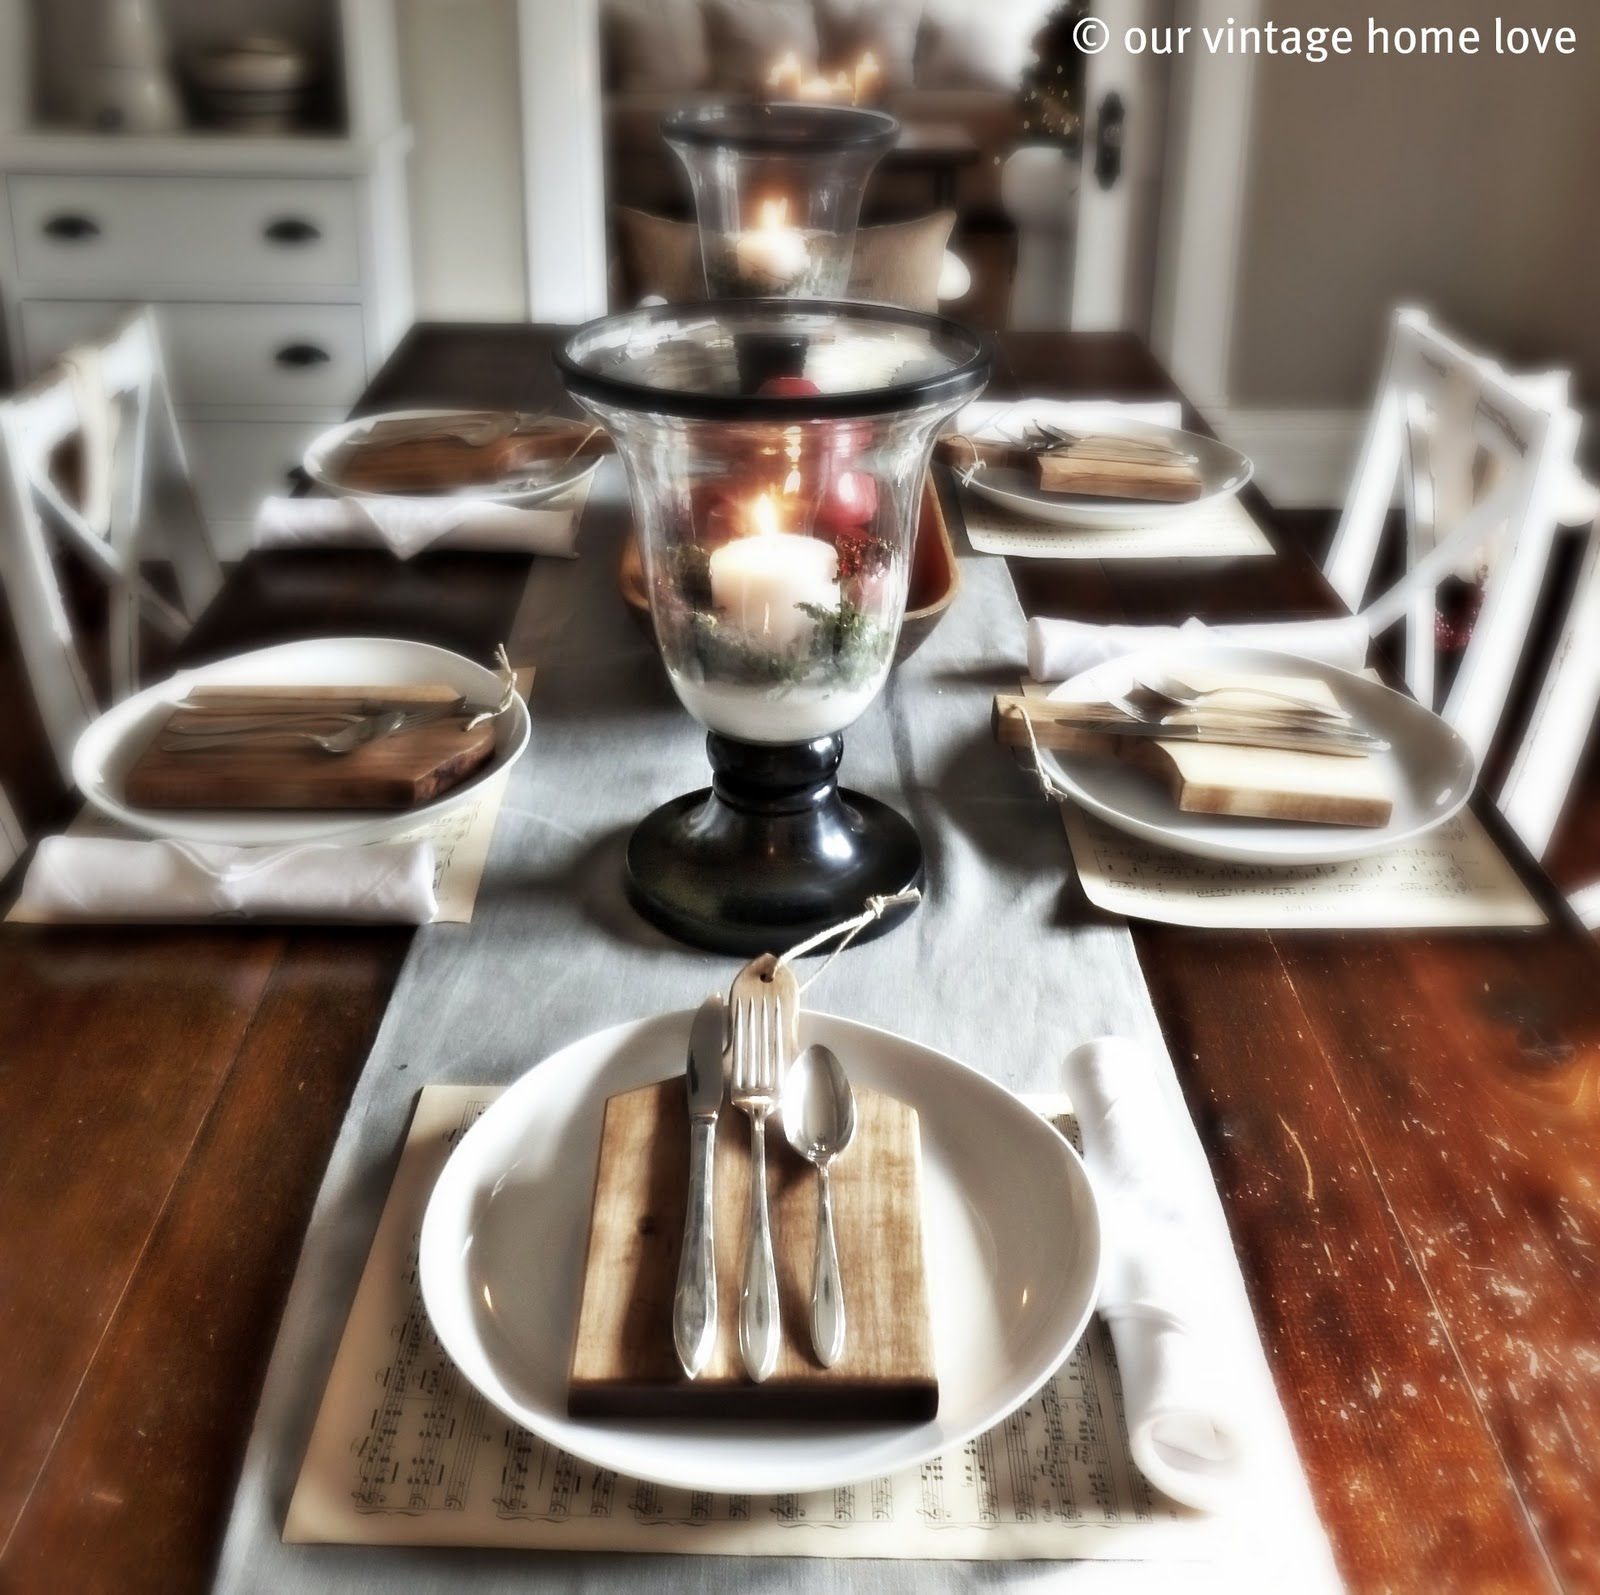 Vintage Home Love: Christmas Table Decor Ideas